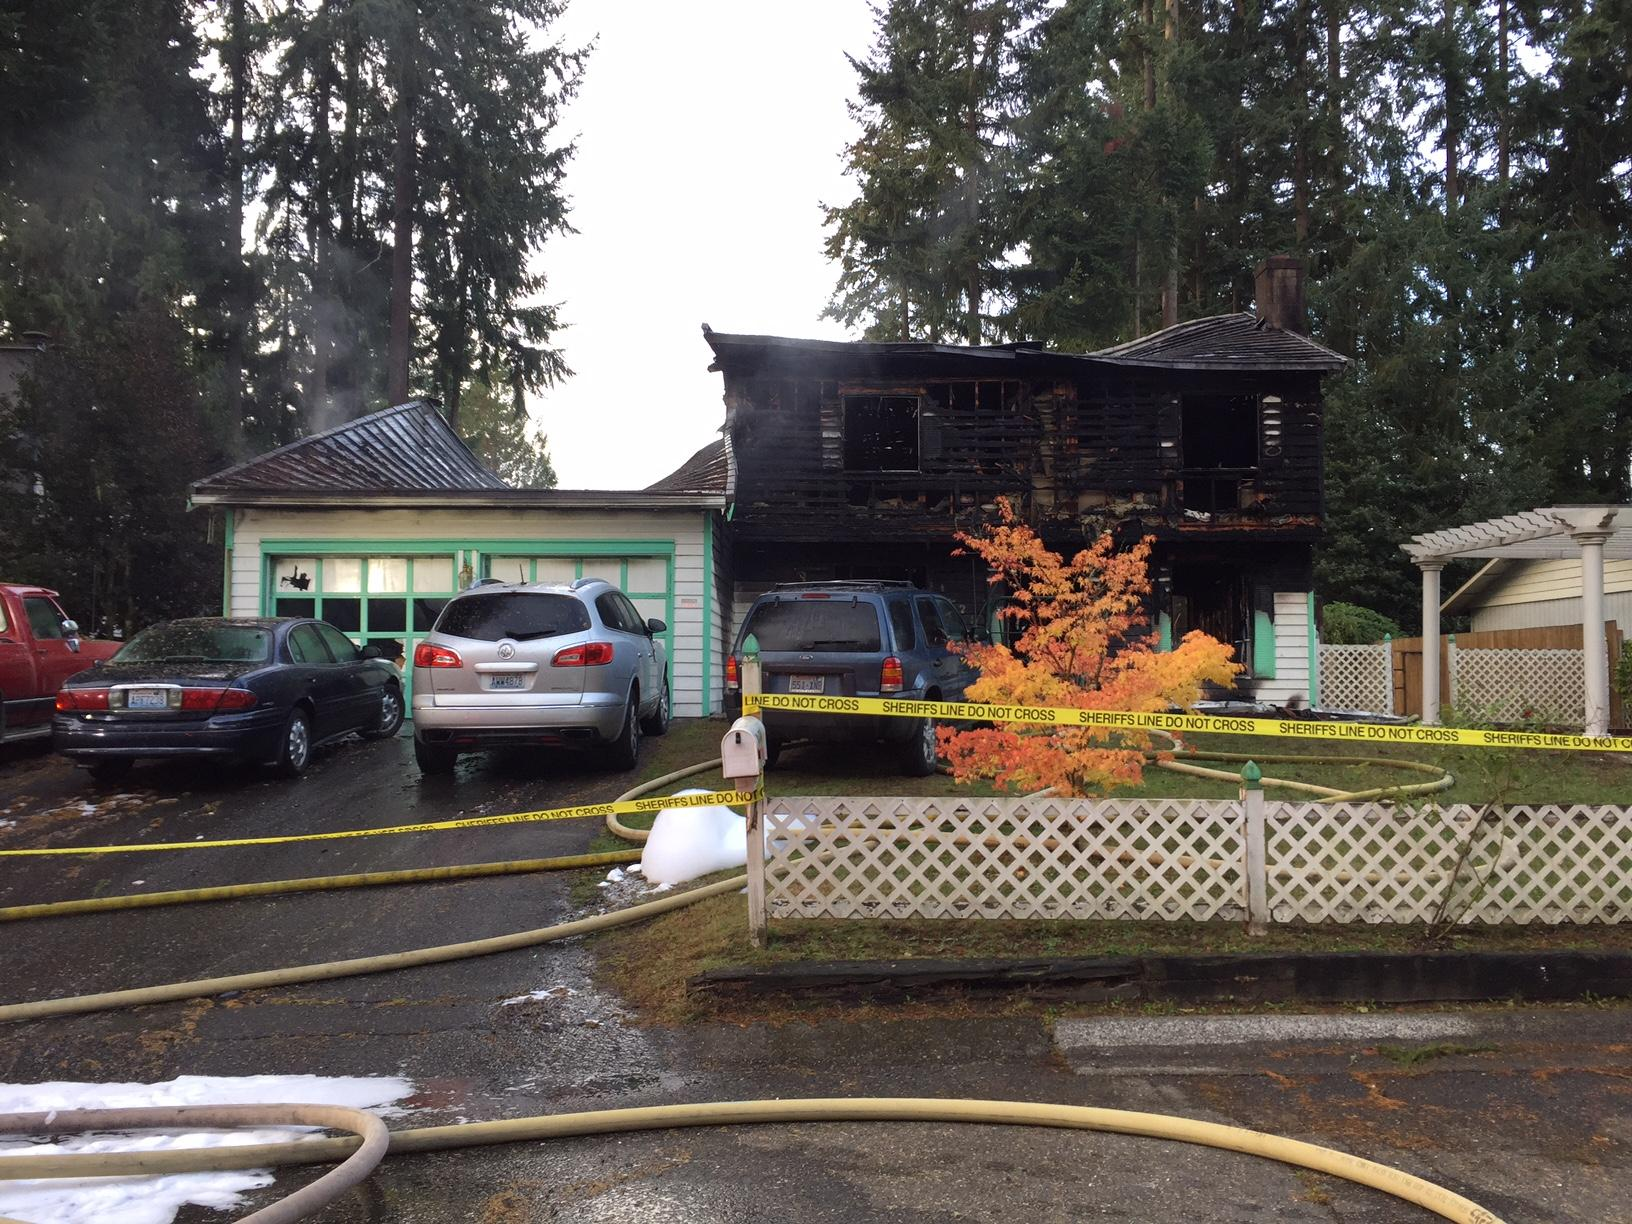 House fire erupts near Port Orchard, killing four people. (Photo courtesy Kitsap County Sheriff's Office)<p></p>